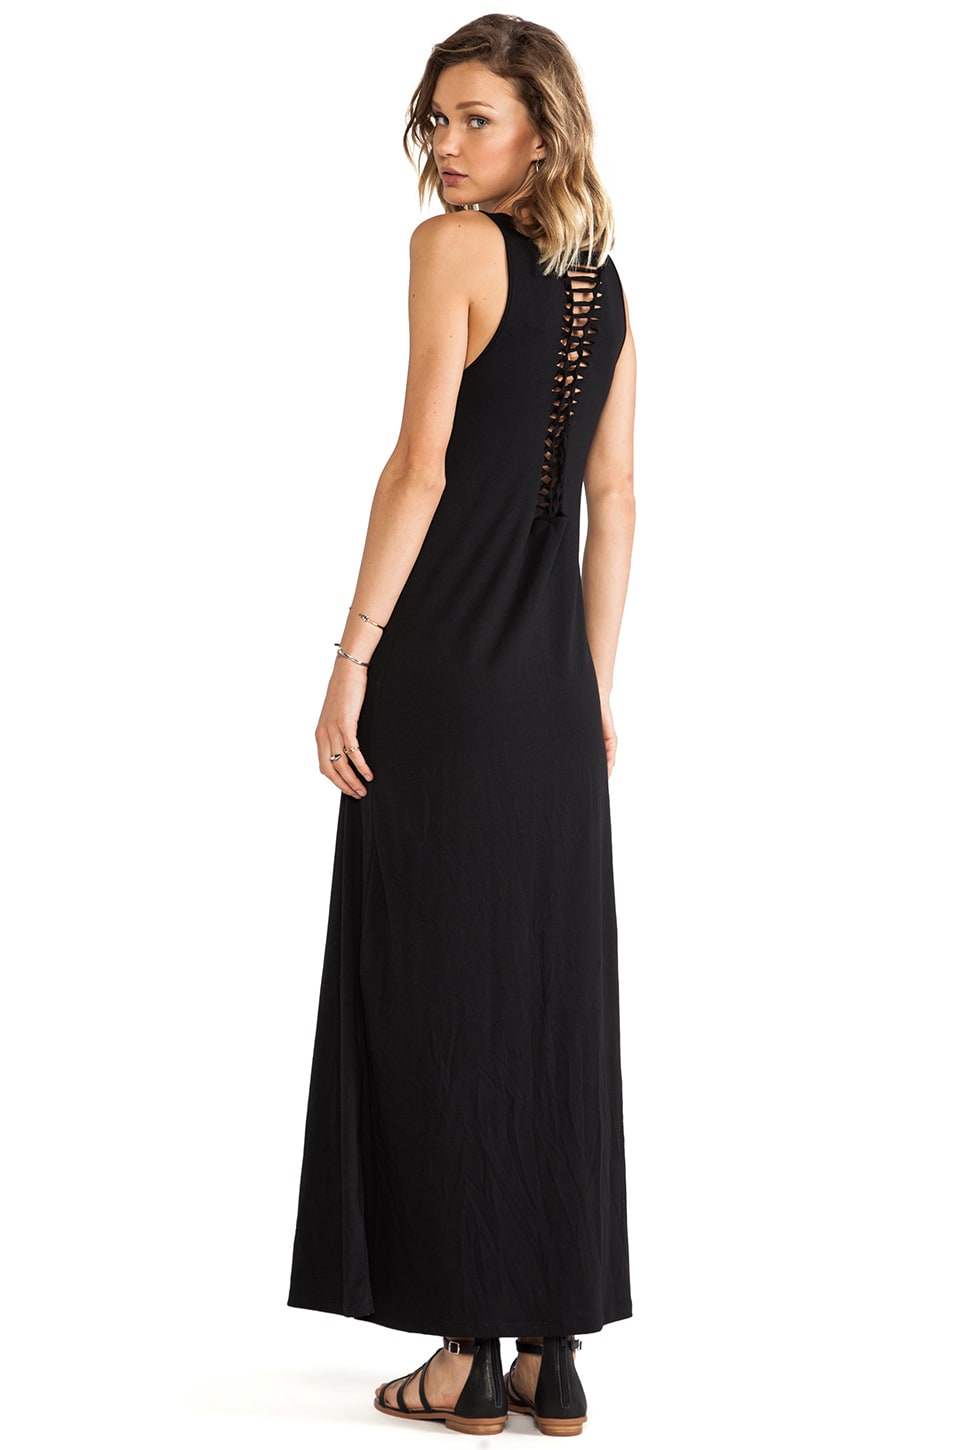 heartLoom Ingrid Dress in Black